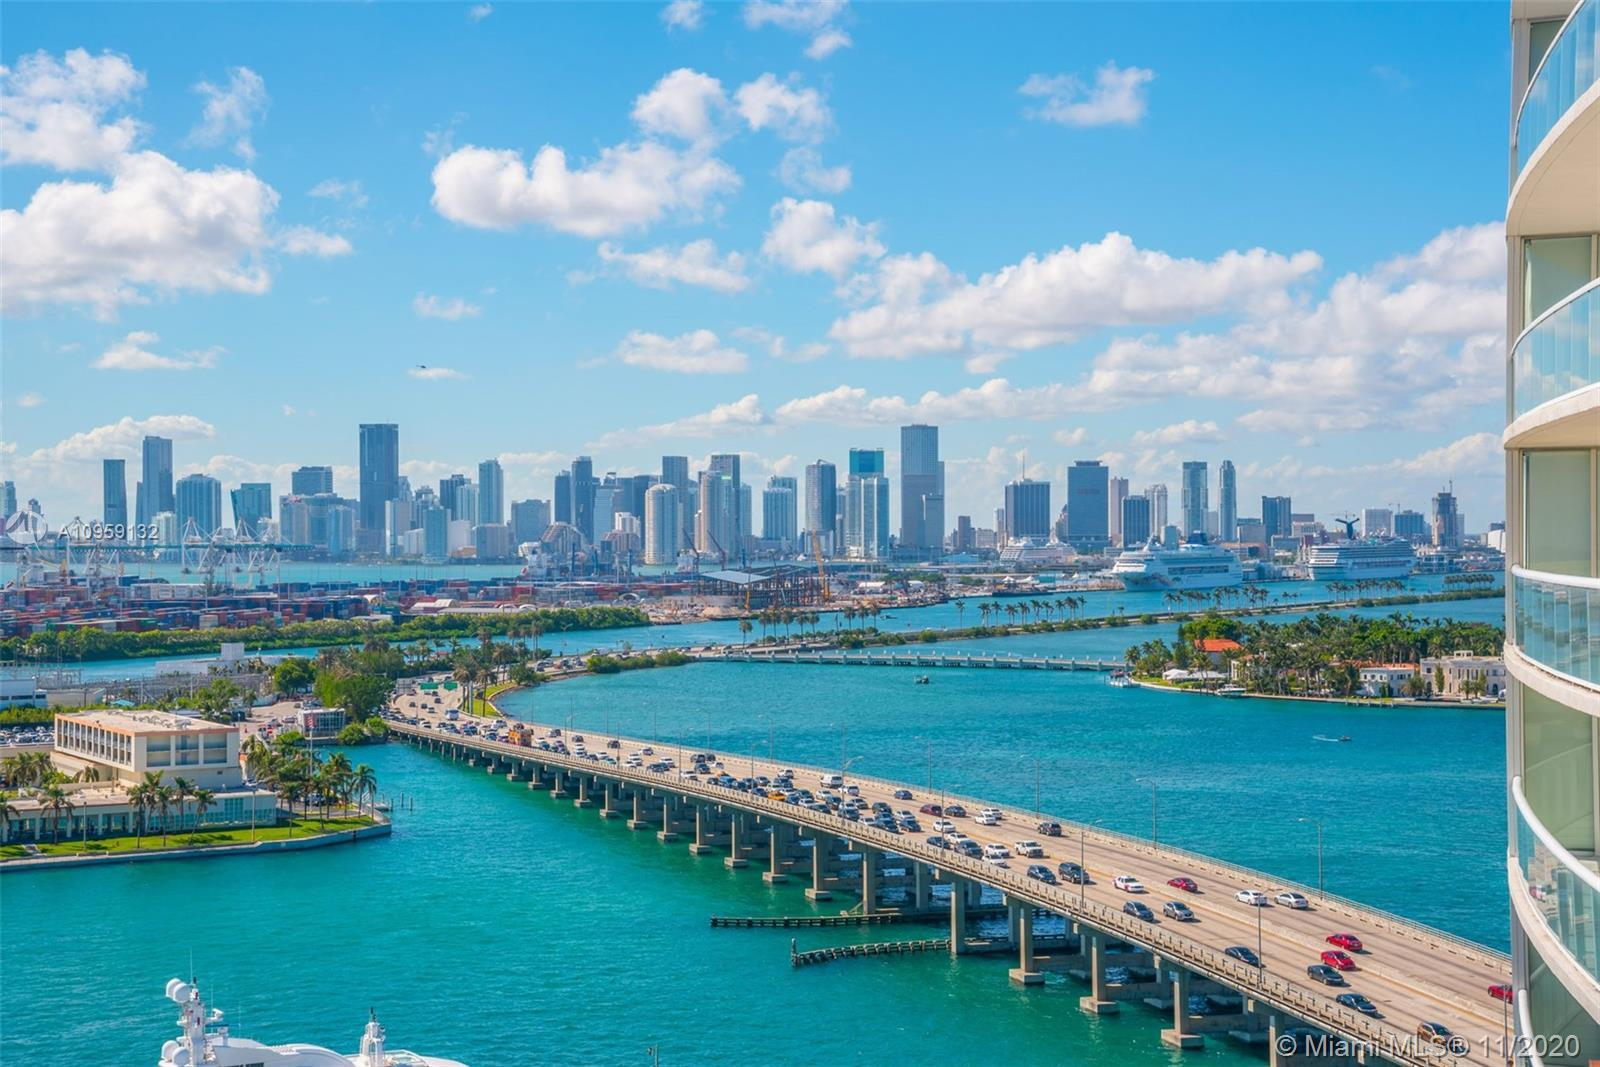 This 07 line at the Icon offers unparalleled views of the Bay, Downtown, Marina, Ocean and City. Ove